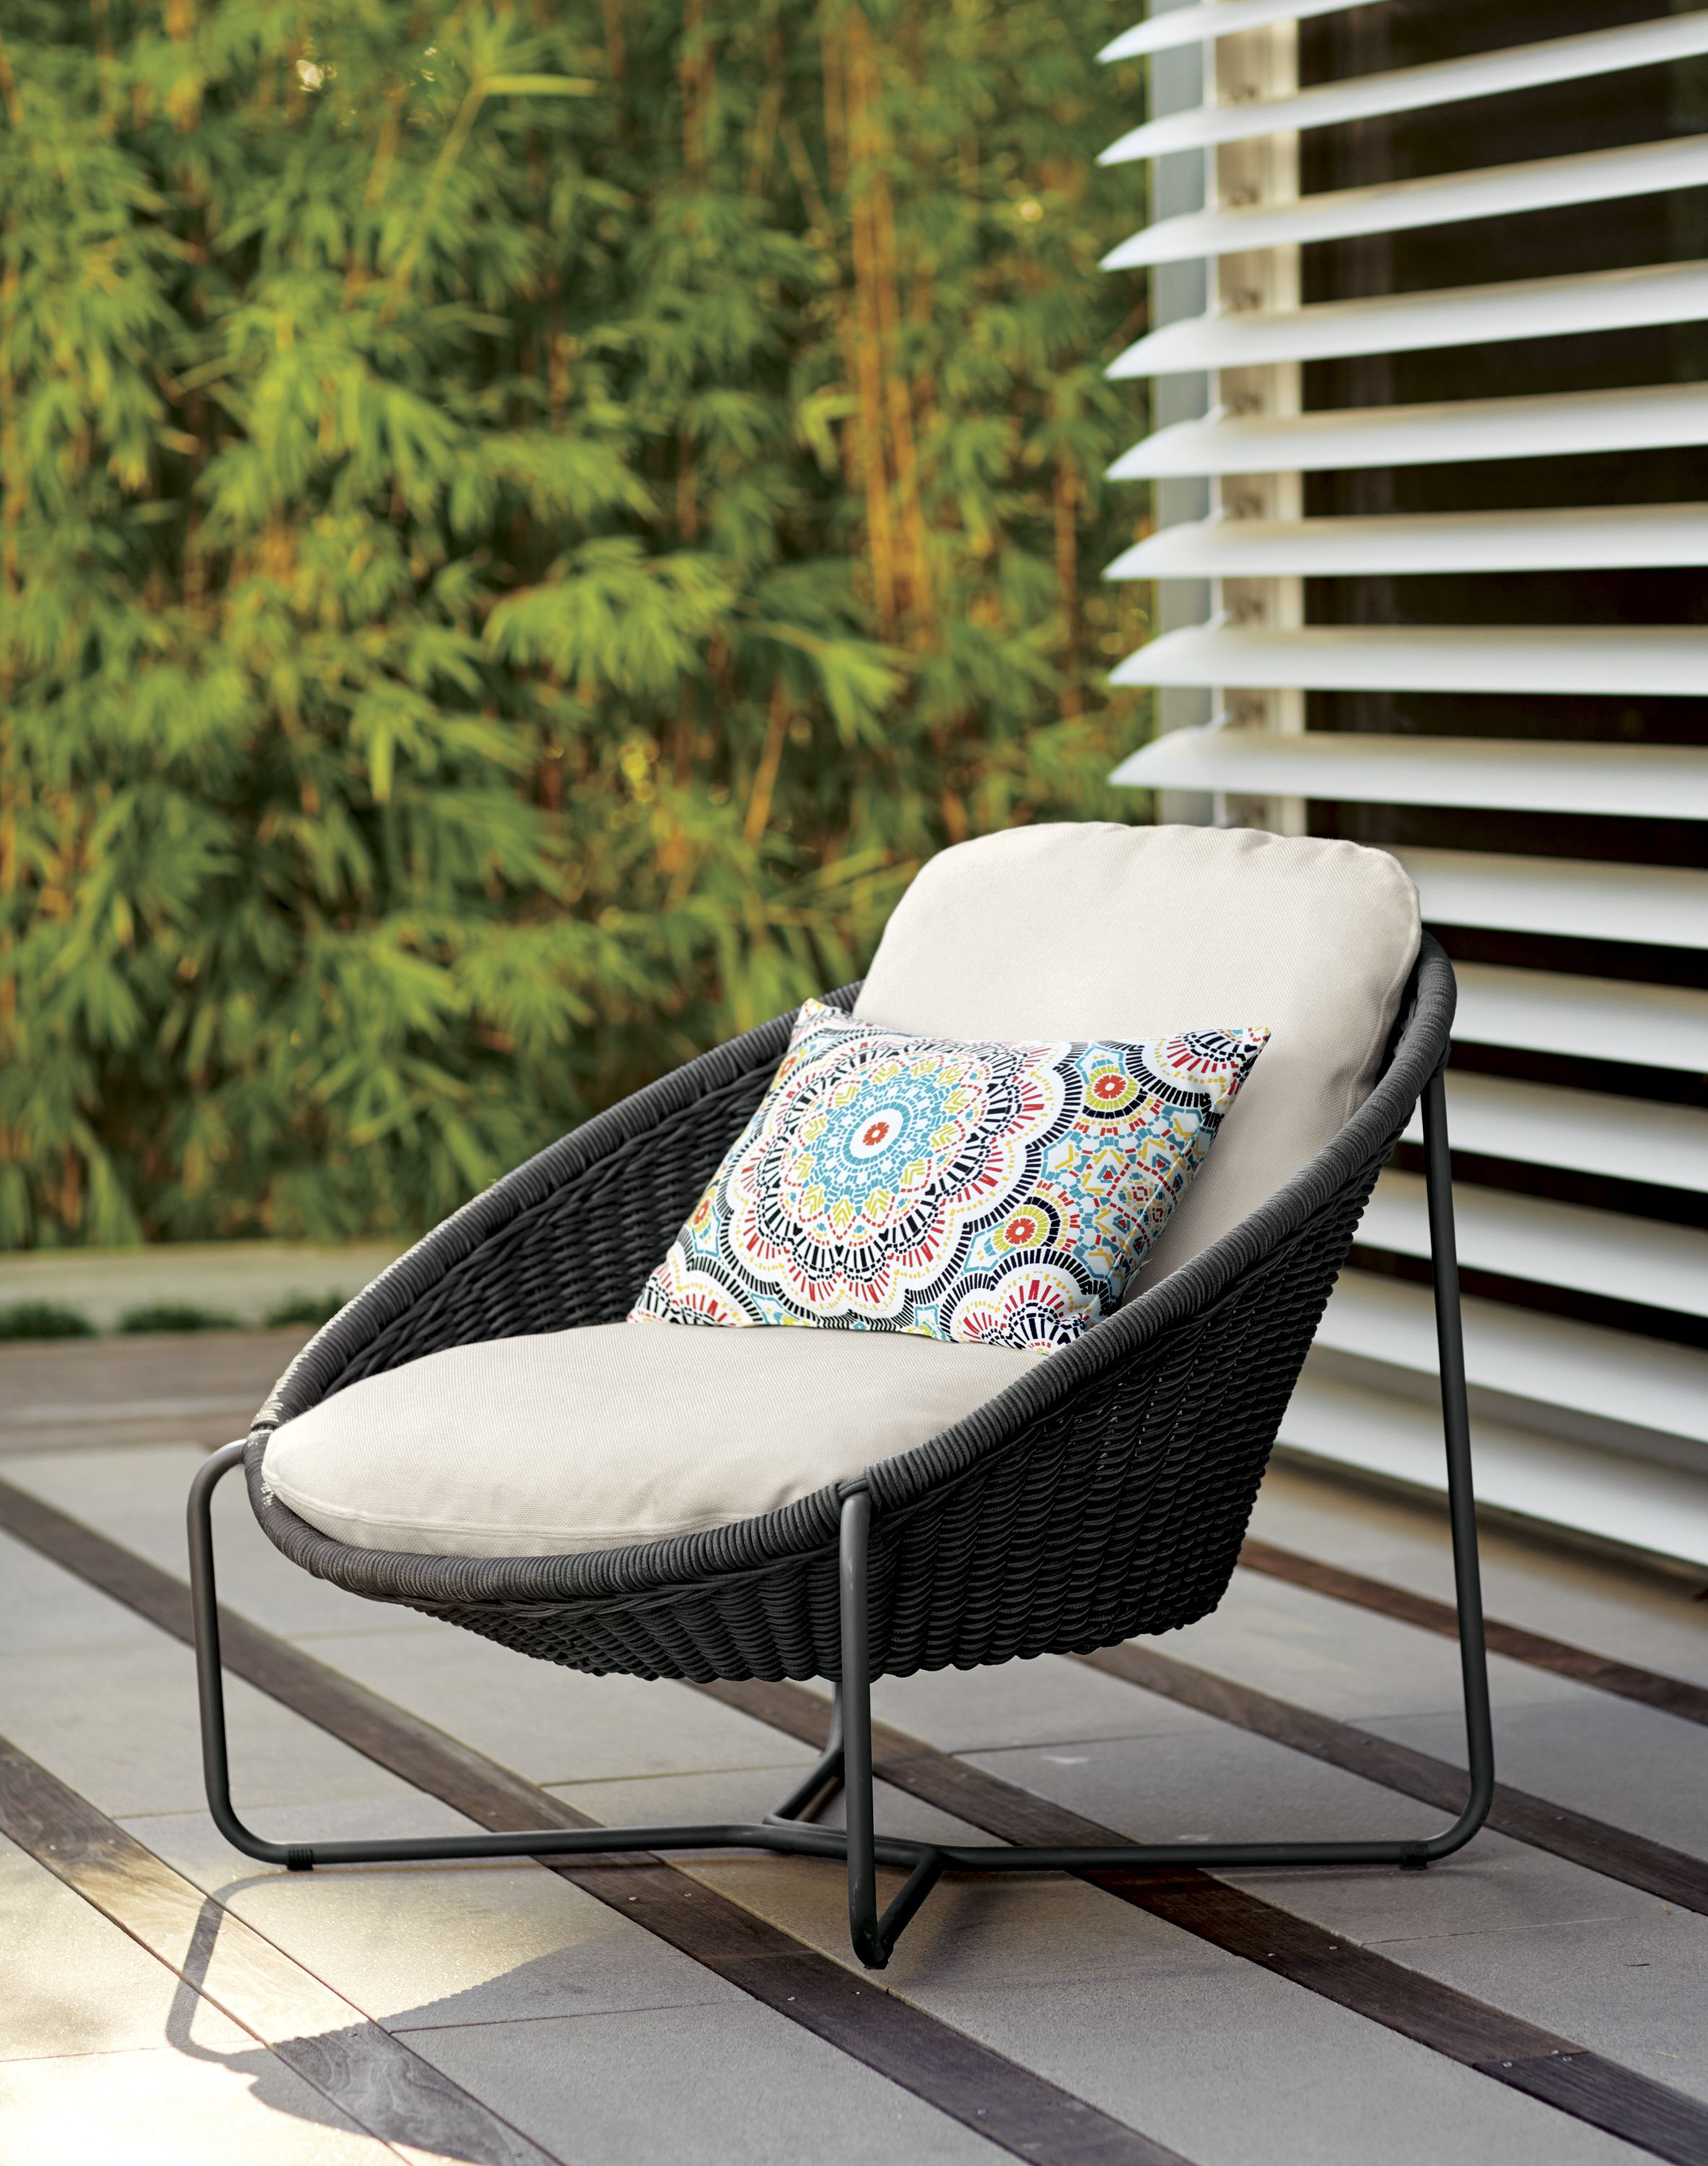 When it comes to relaxing outdoors in affordable modern style our laid back morocco collection knows the ropes oval outdoor lounge chair is